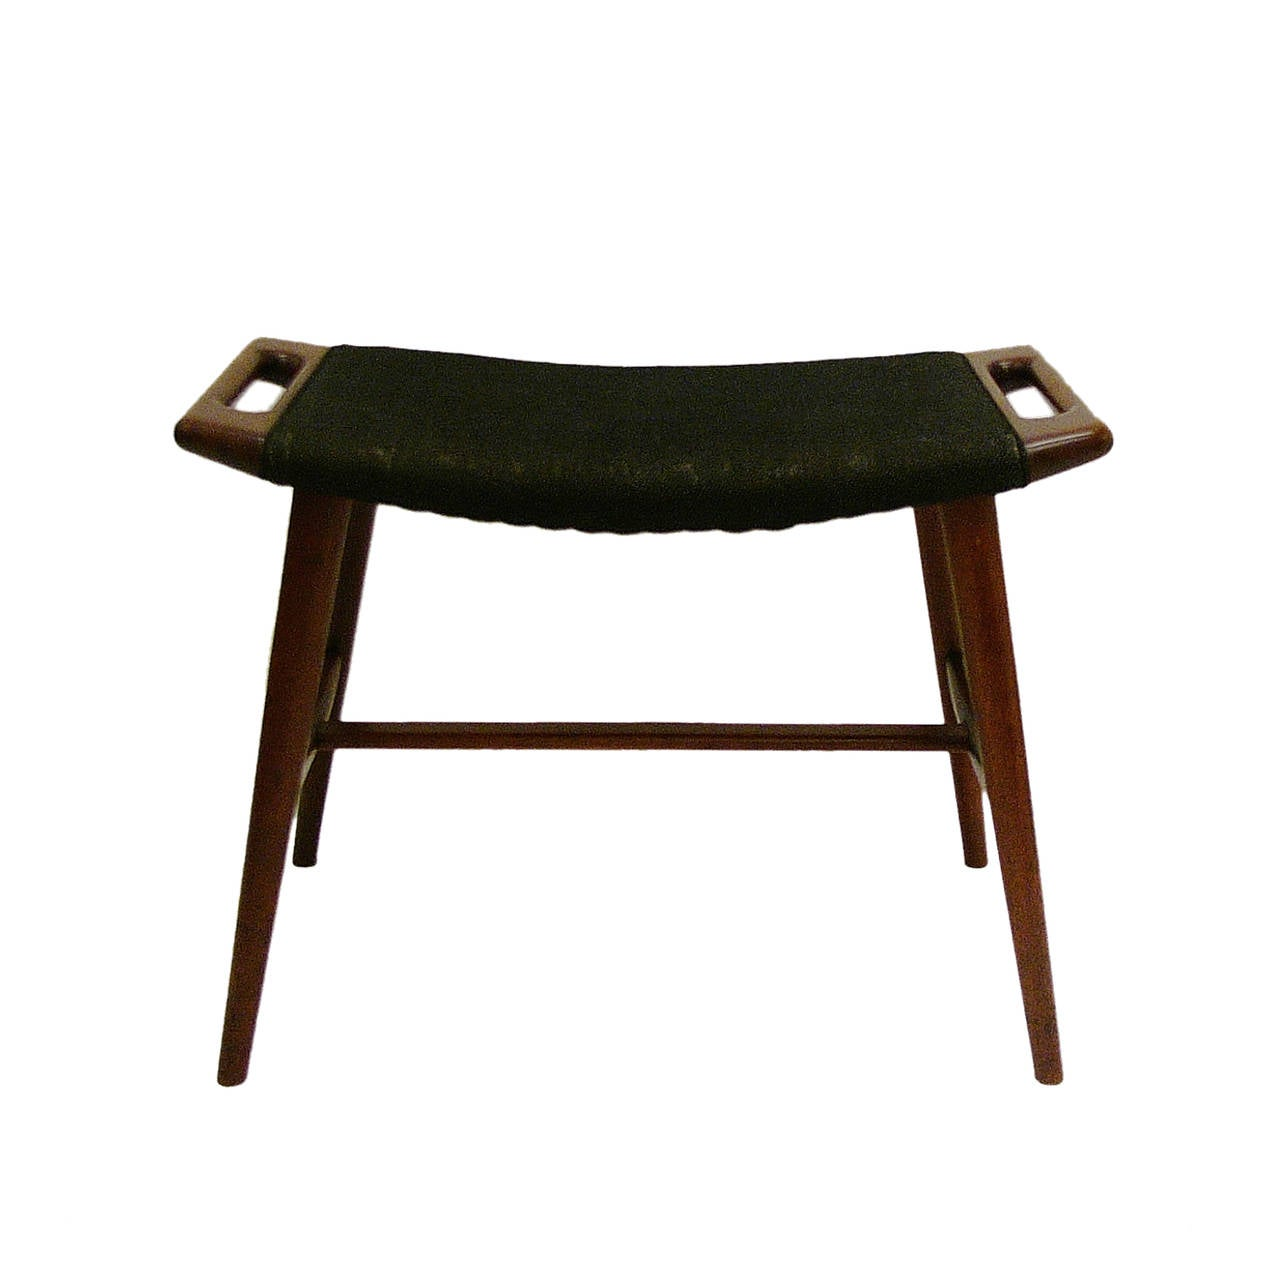 Hans Wegner Piano Stool or Music Bench 2  sc 1 st  1stDibs & Hans Wegner Piano Stool or Music Bench at 1stdibs islam-shia.org